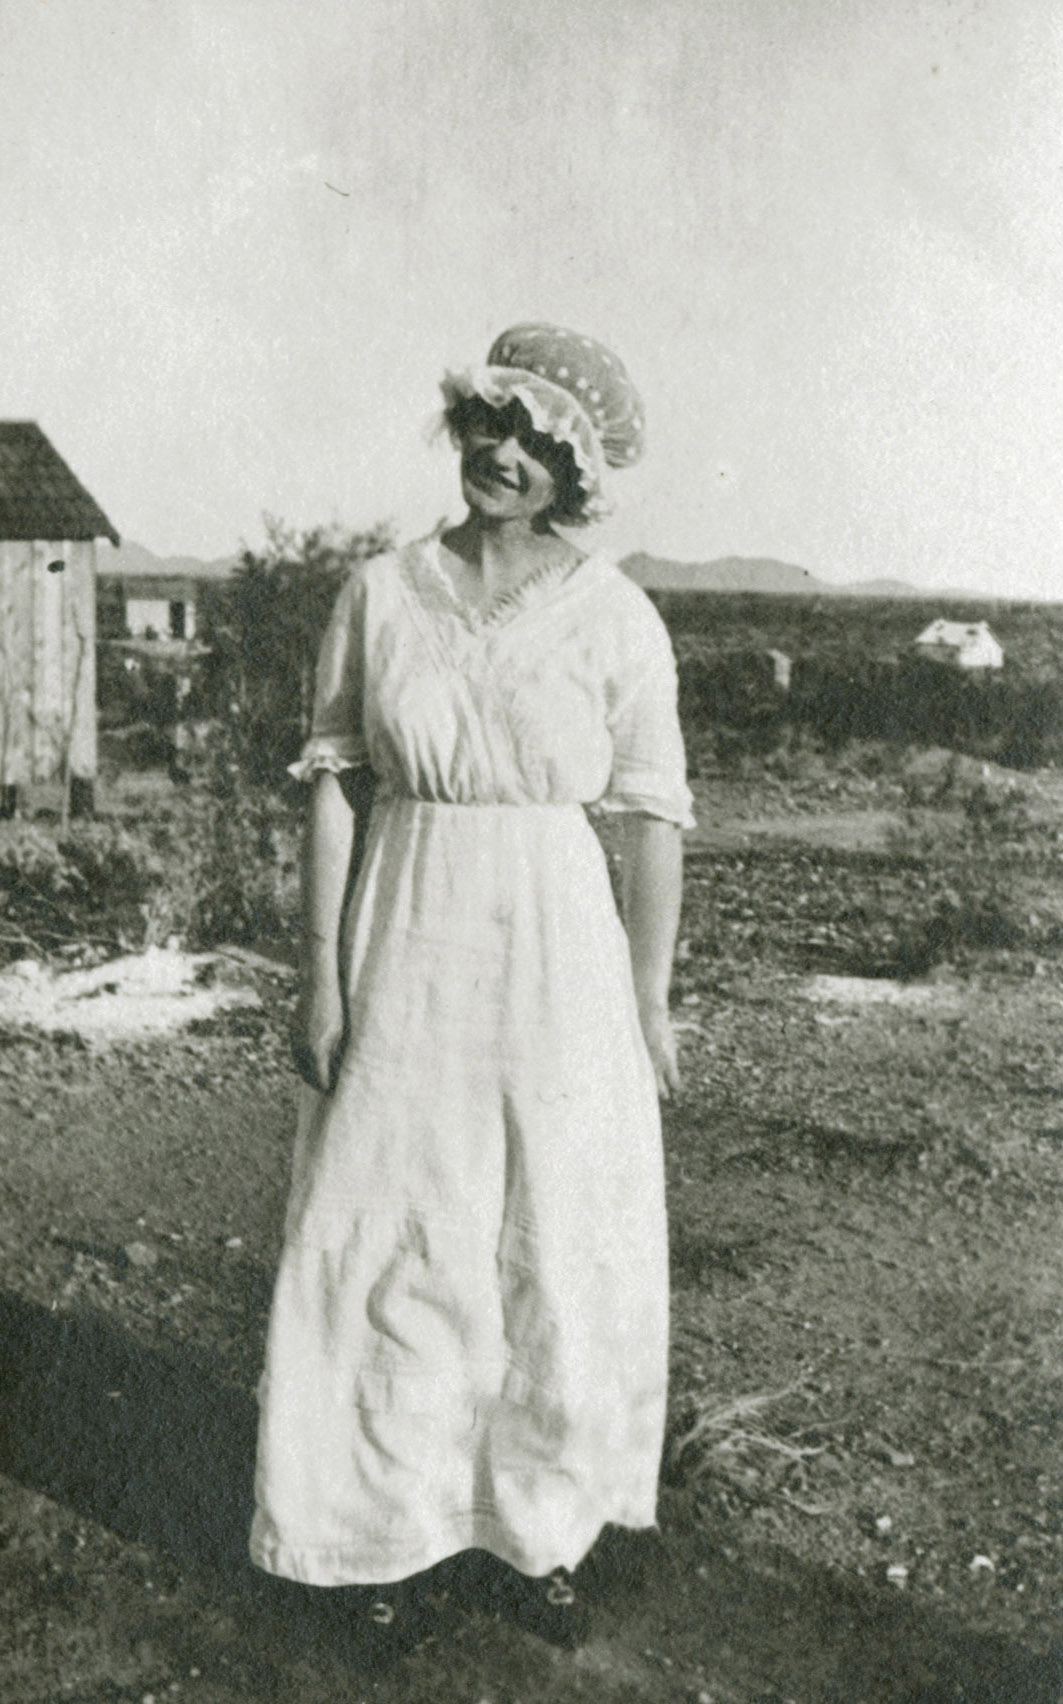 Miss Hamill, Vulture Mine School Teacher, 1913